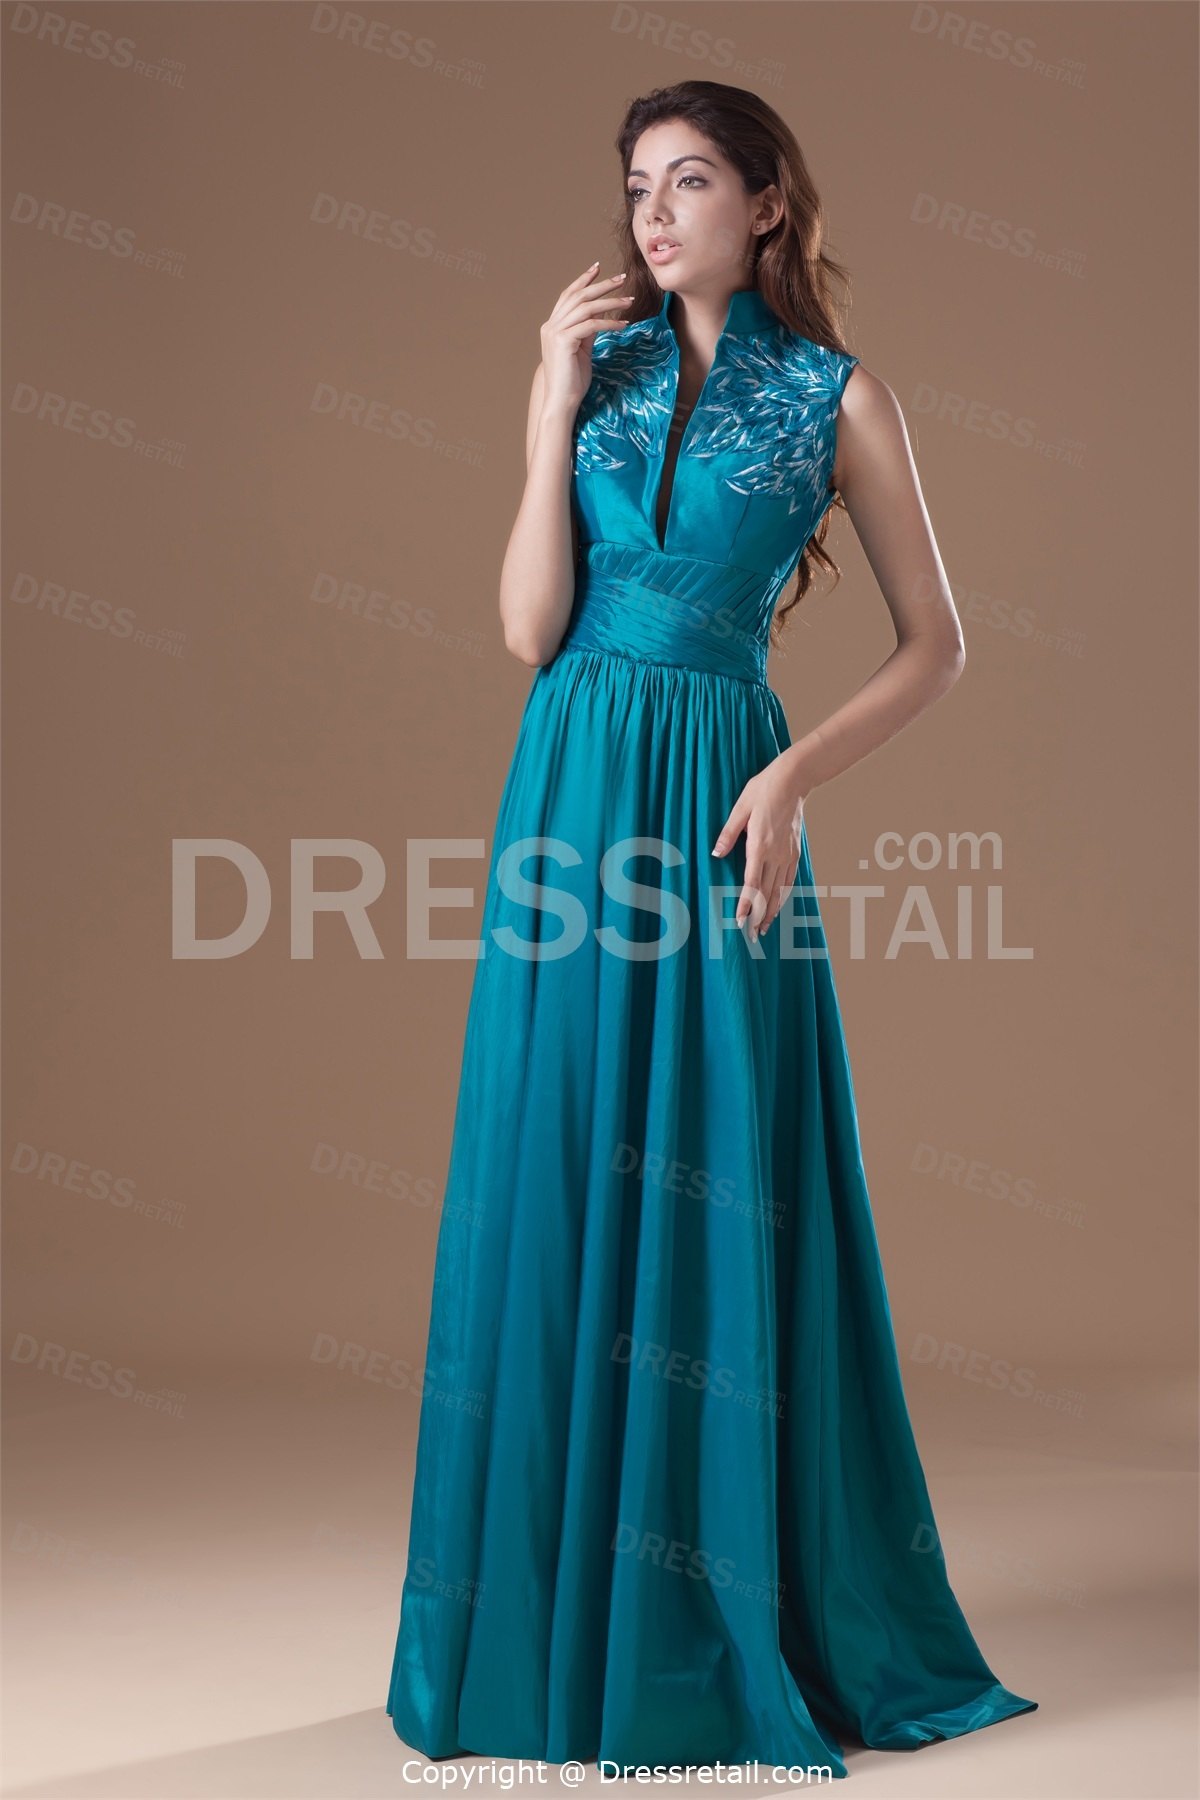 Buy Zalalus Women's Cocktail Dress High Neck Lace Dresses For Special Occasions and other Dresses at distrib-ah3euse9.tk Our wide selection is elegible for free shipping and free returns.